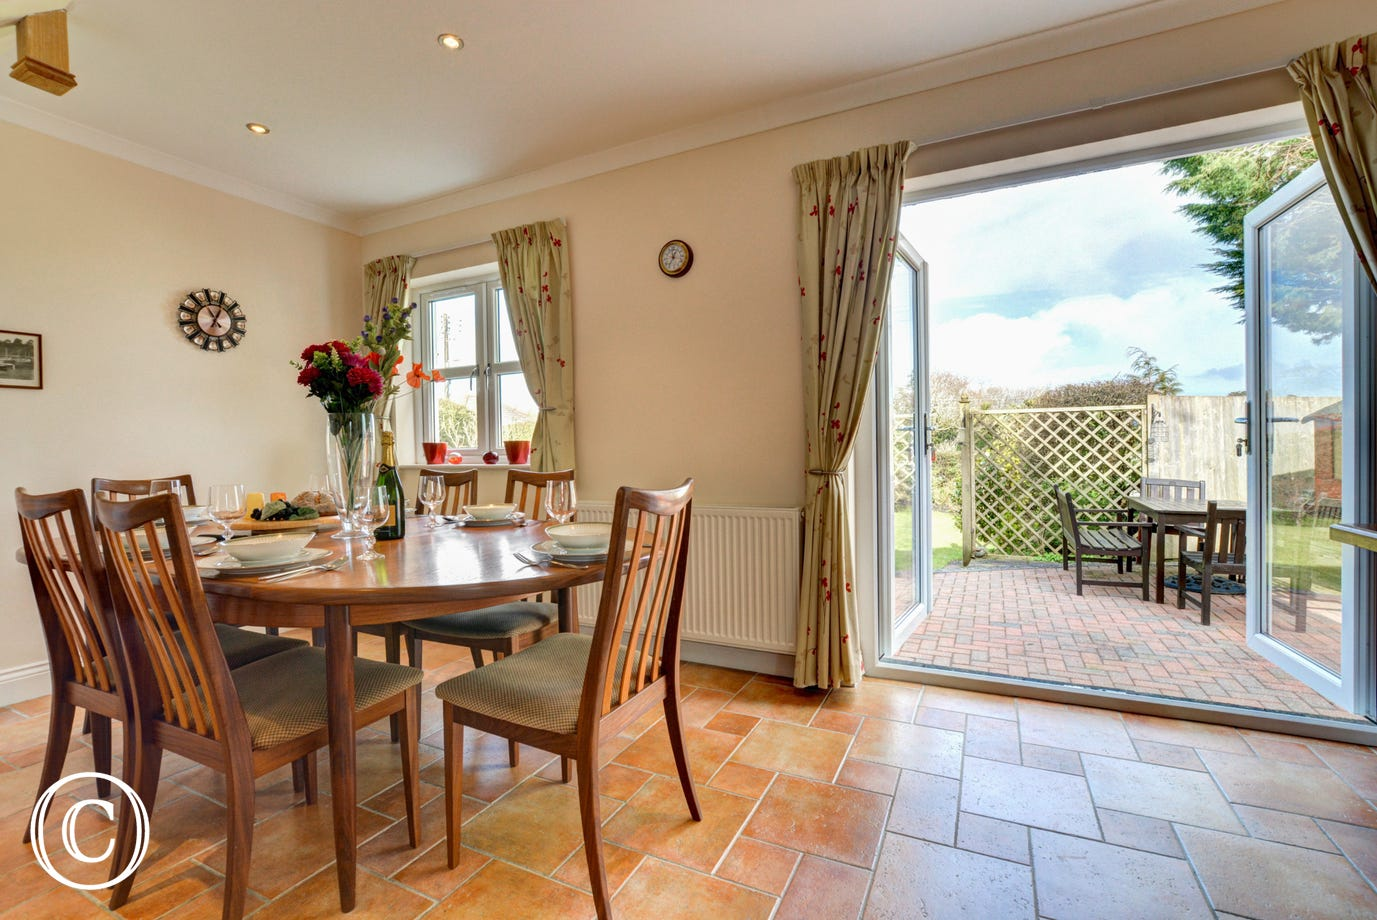 A dining table and chairs with patio door leading out onto a well presented garden